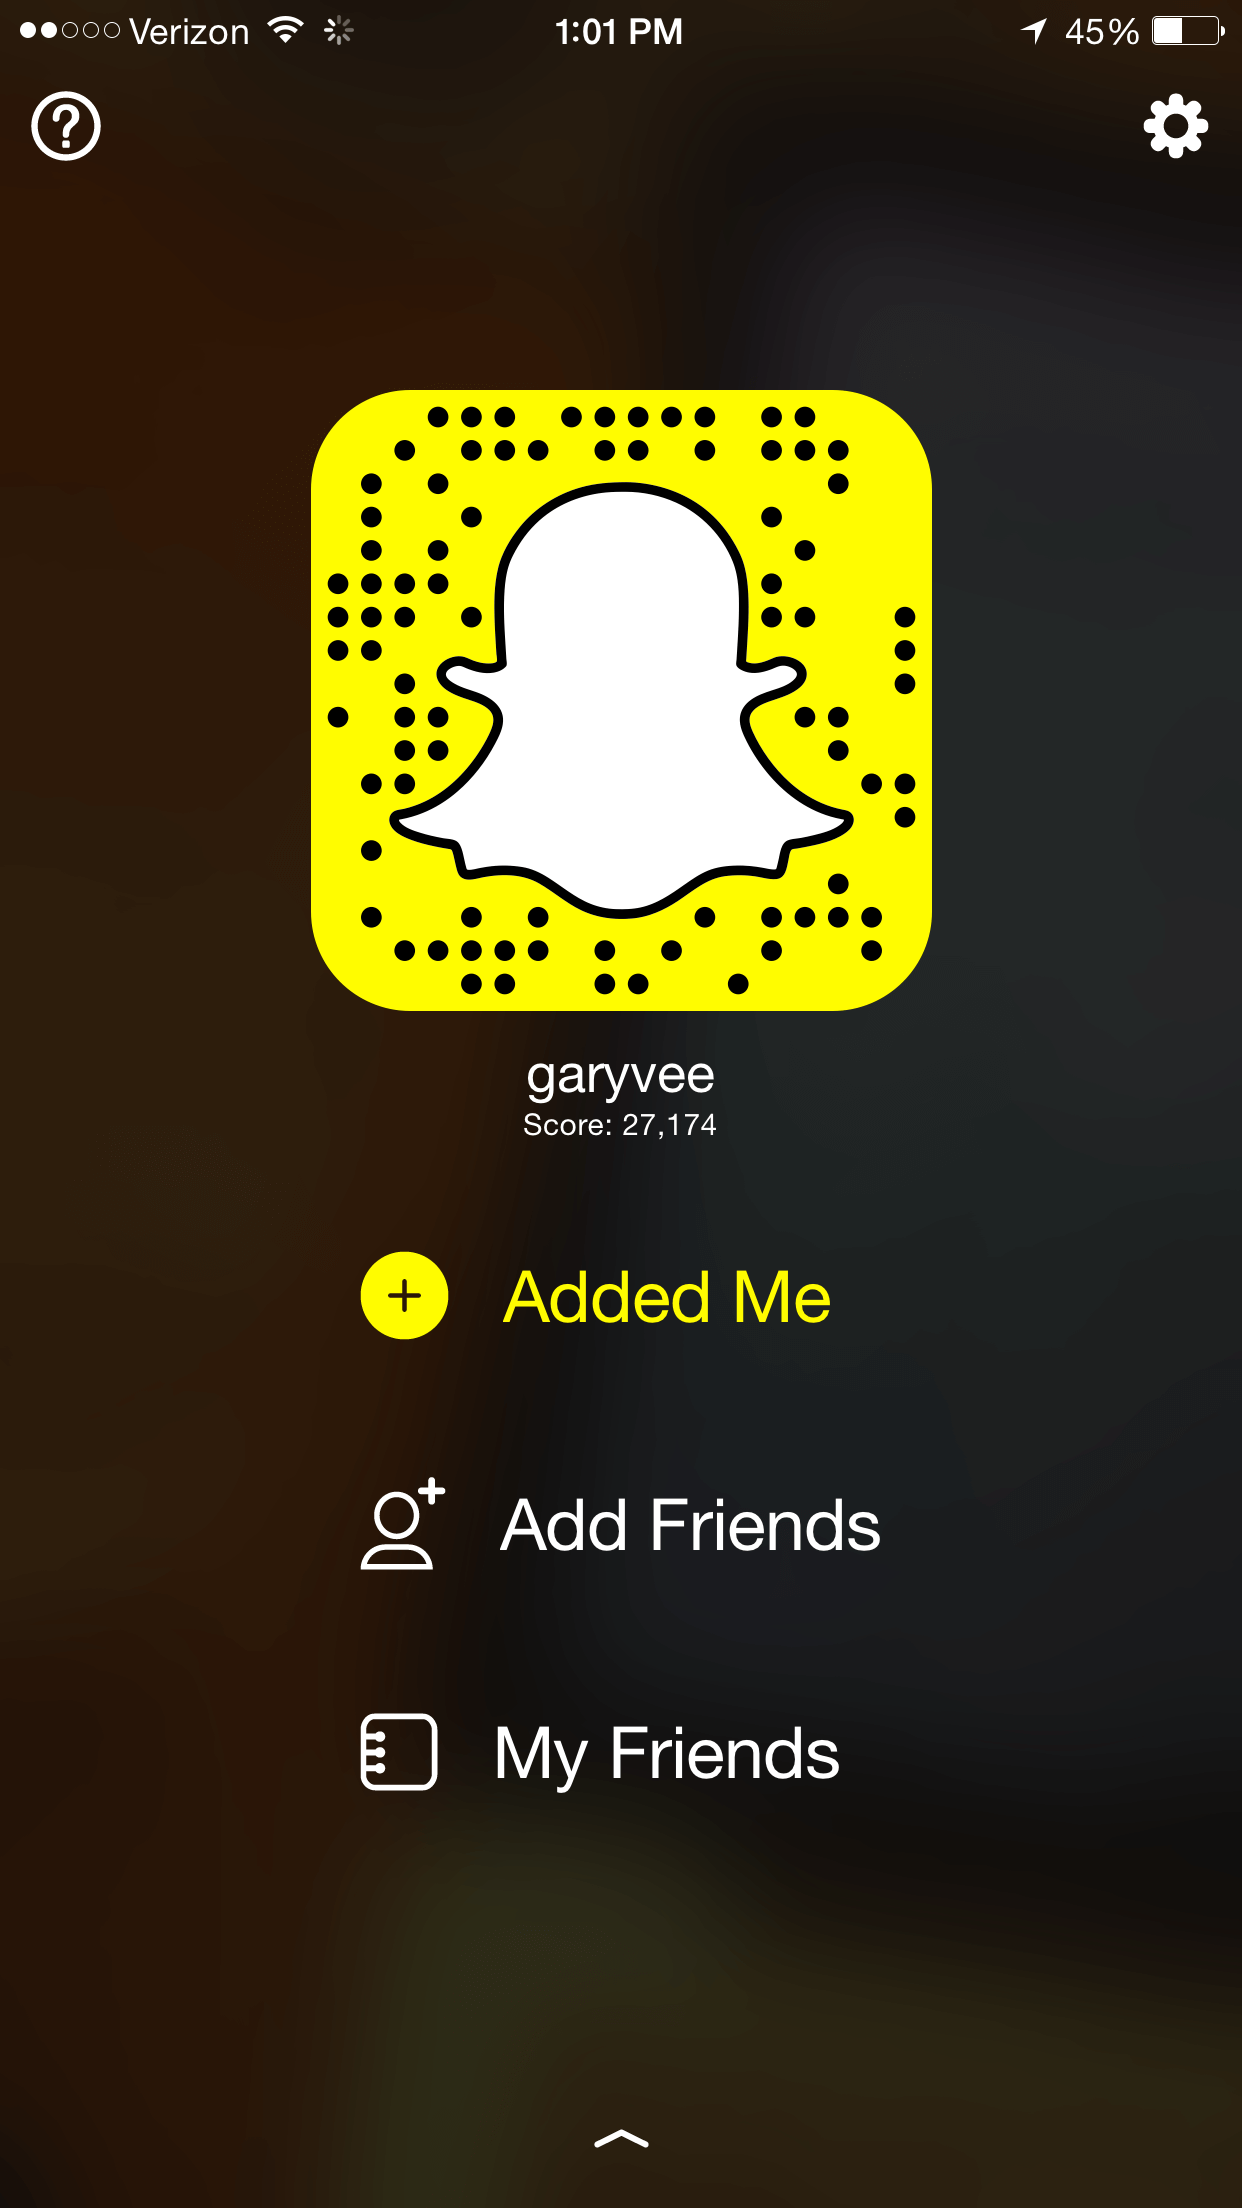 QR Code for garyvee on Snapchat